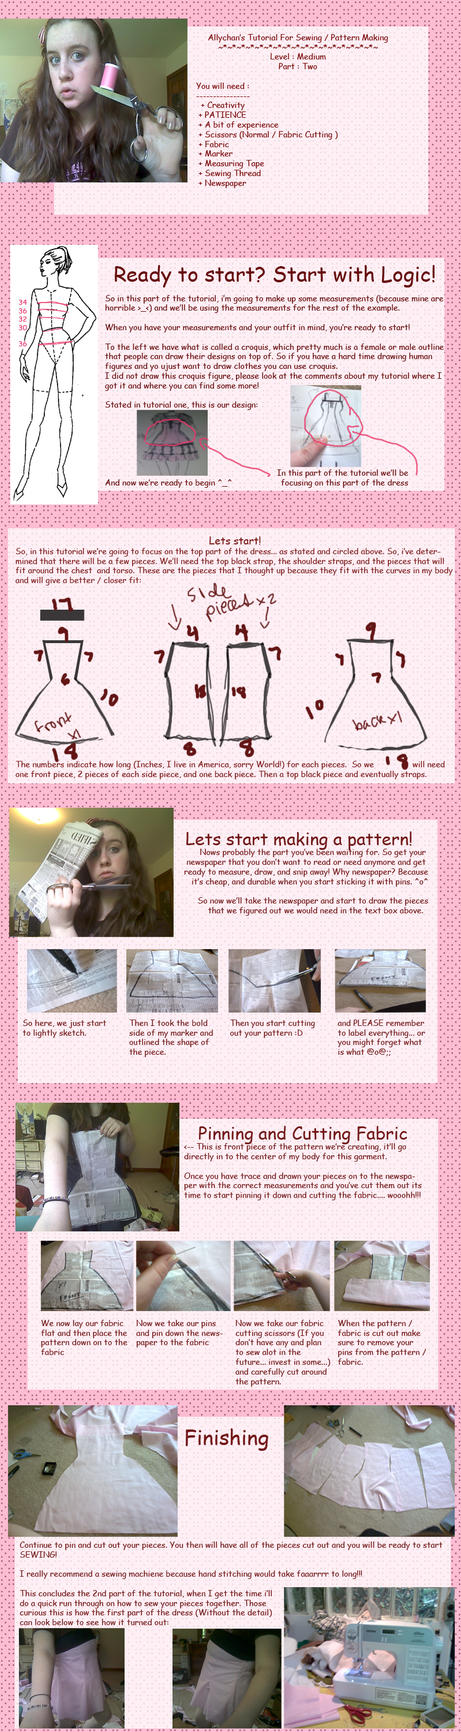 Allys sewing tutorial part two by allychan